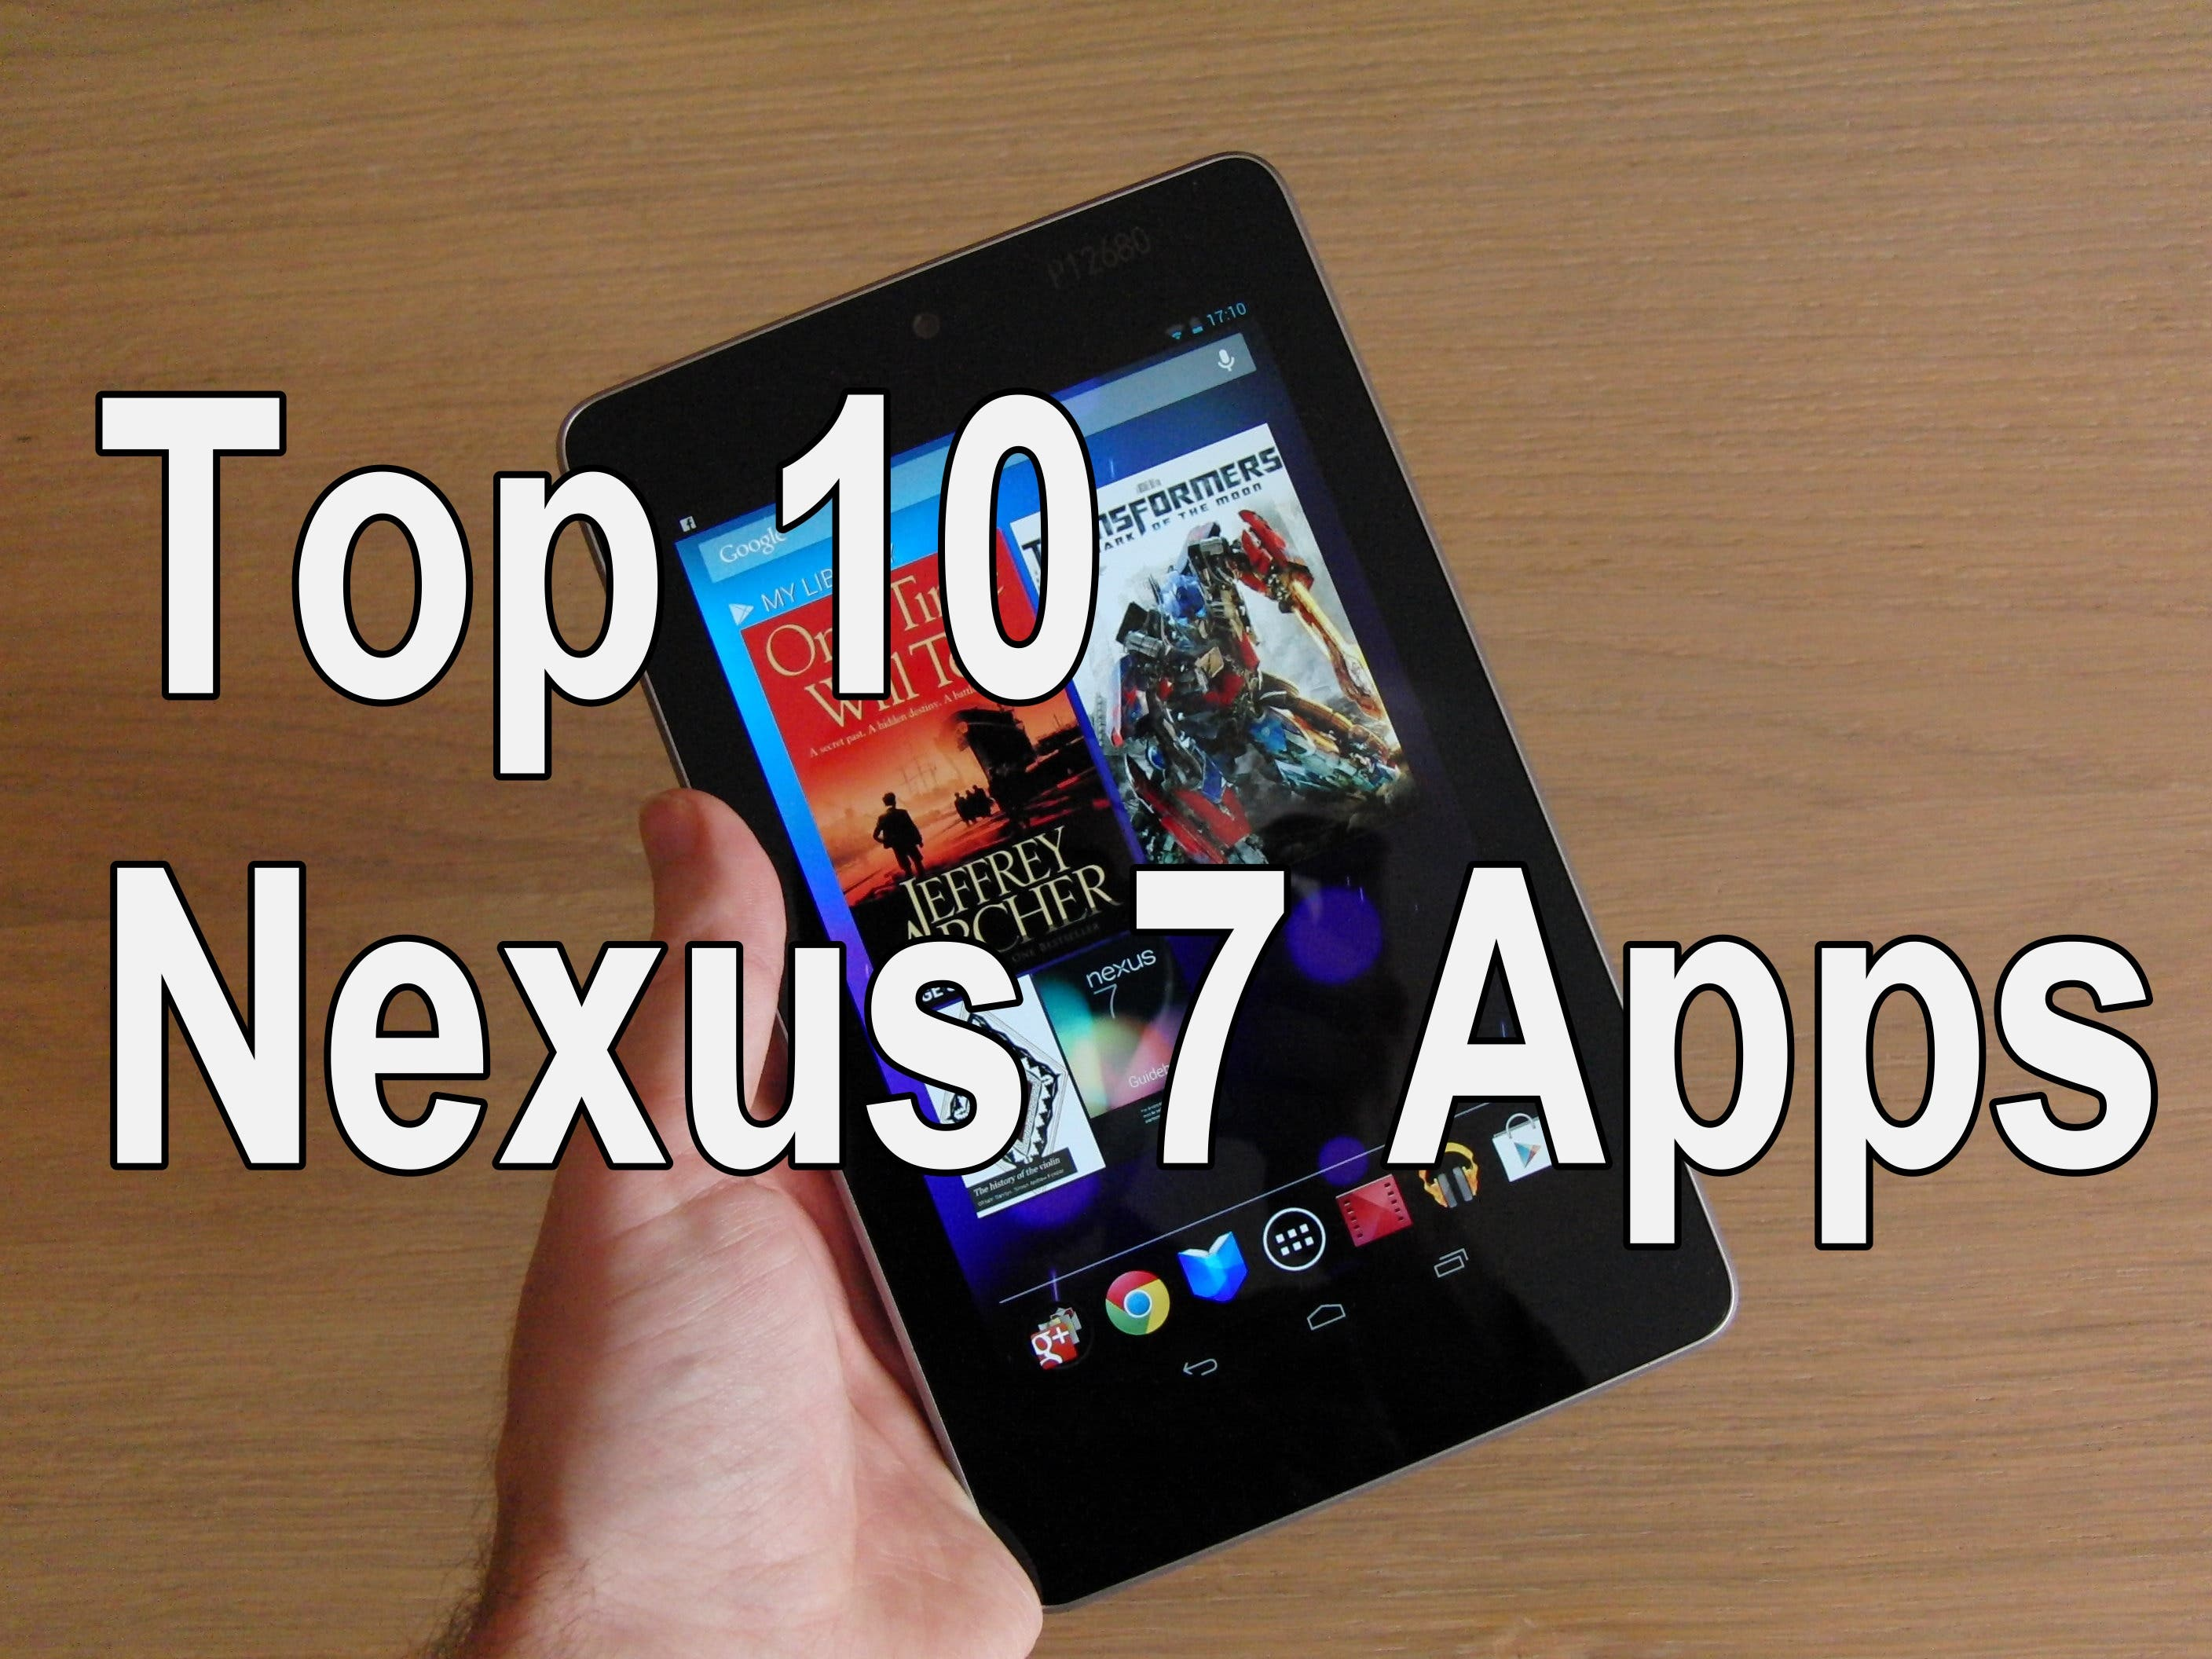 Top 10 Nexus 7 Apps